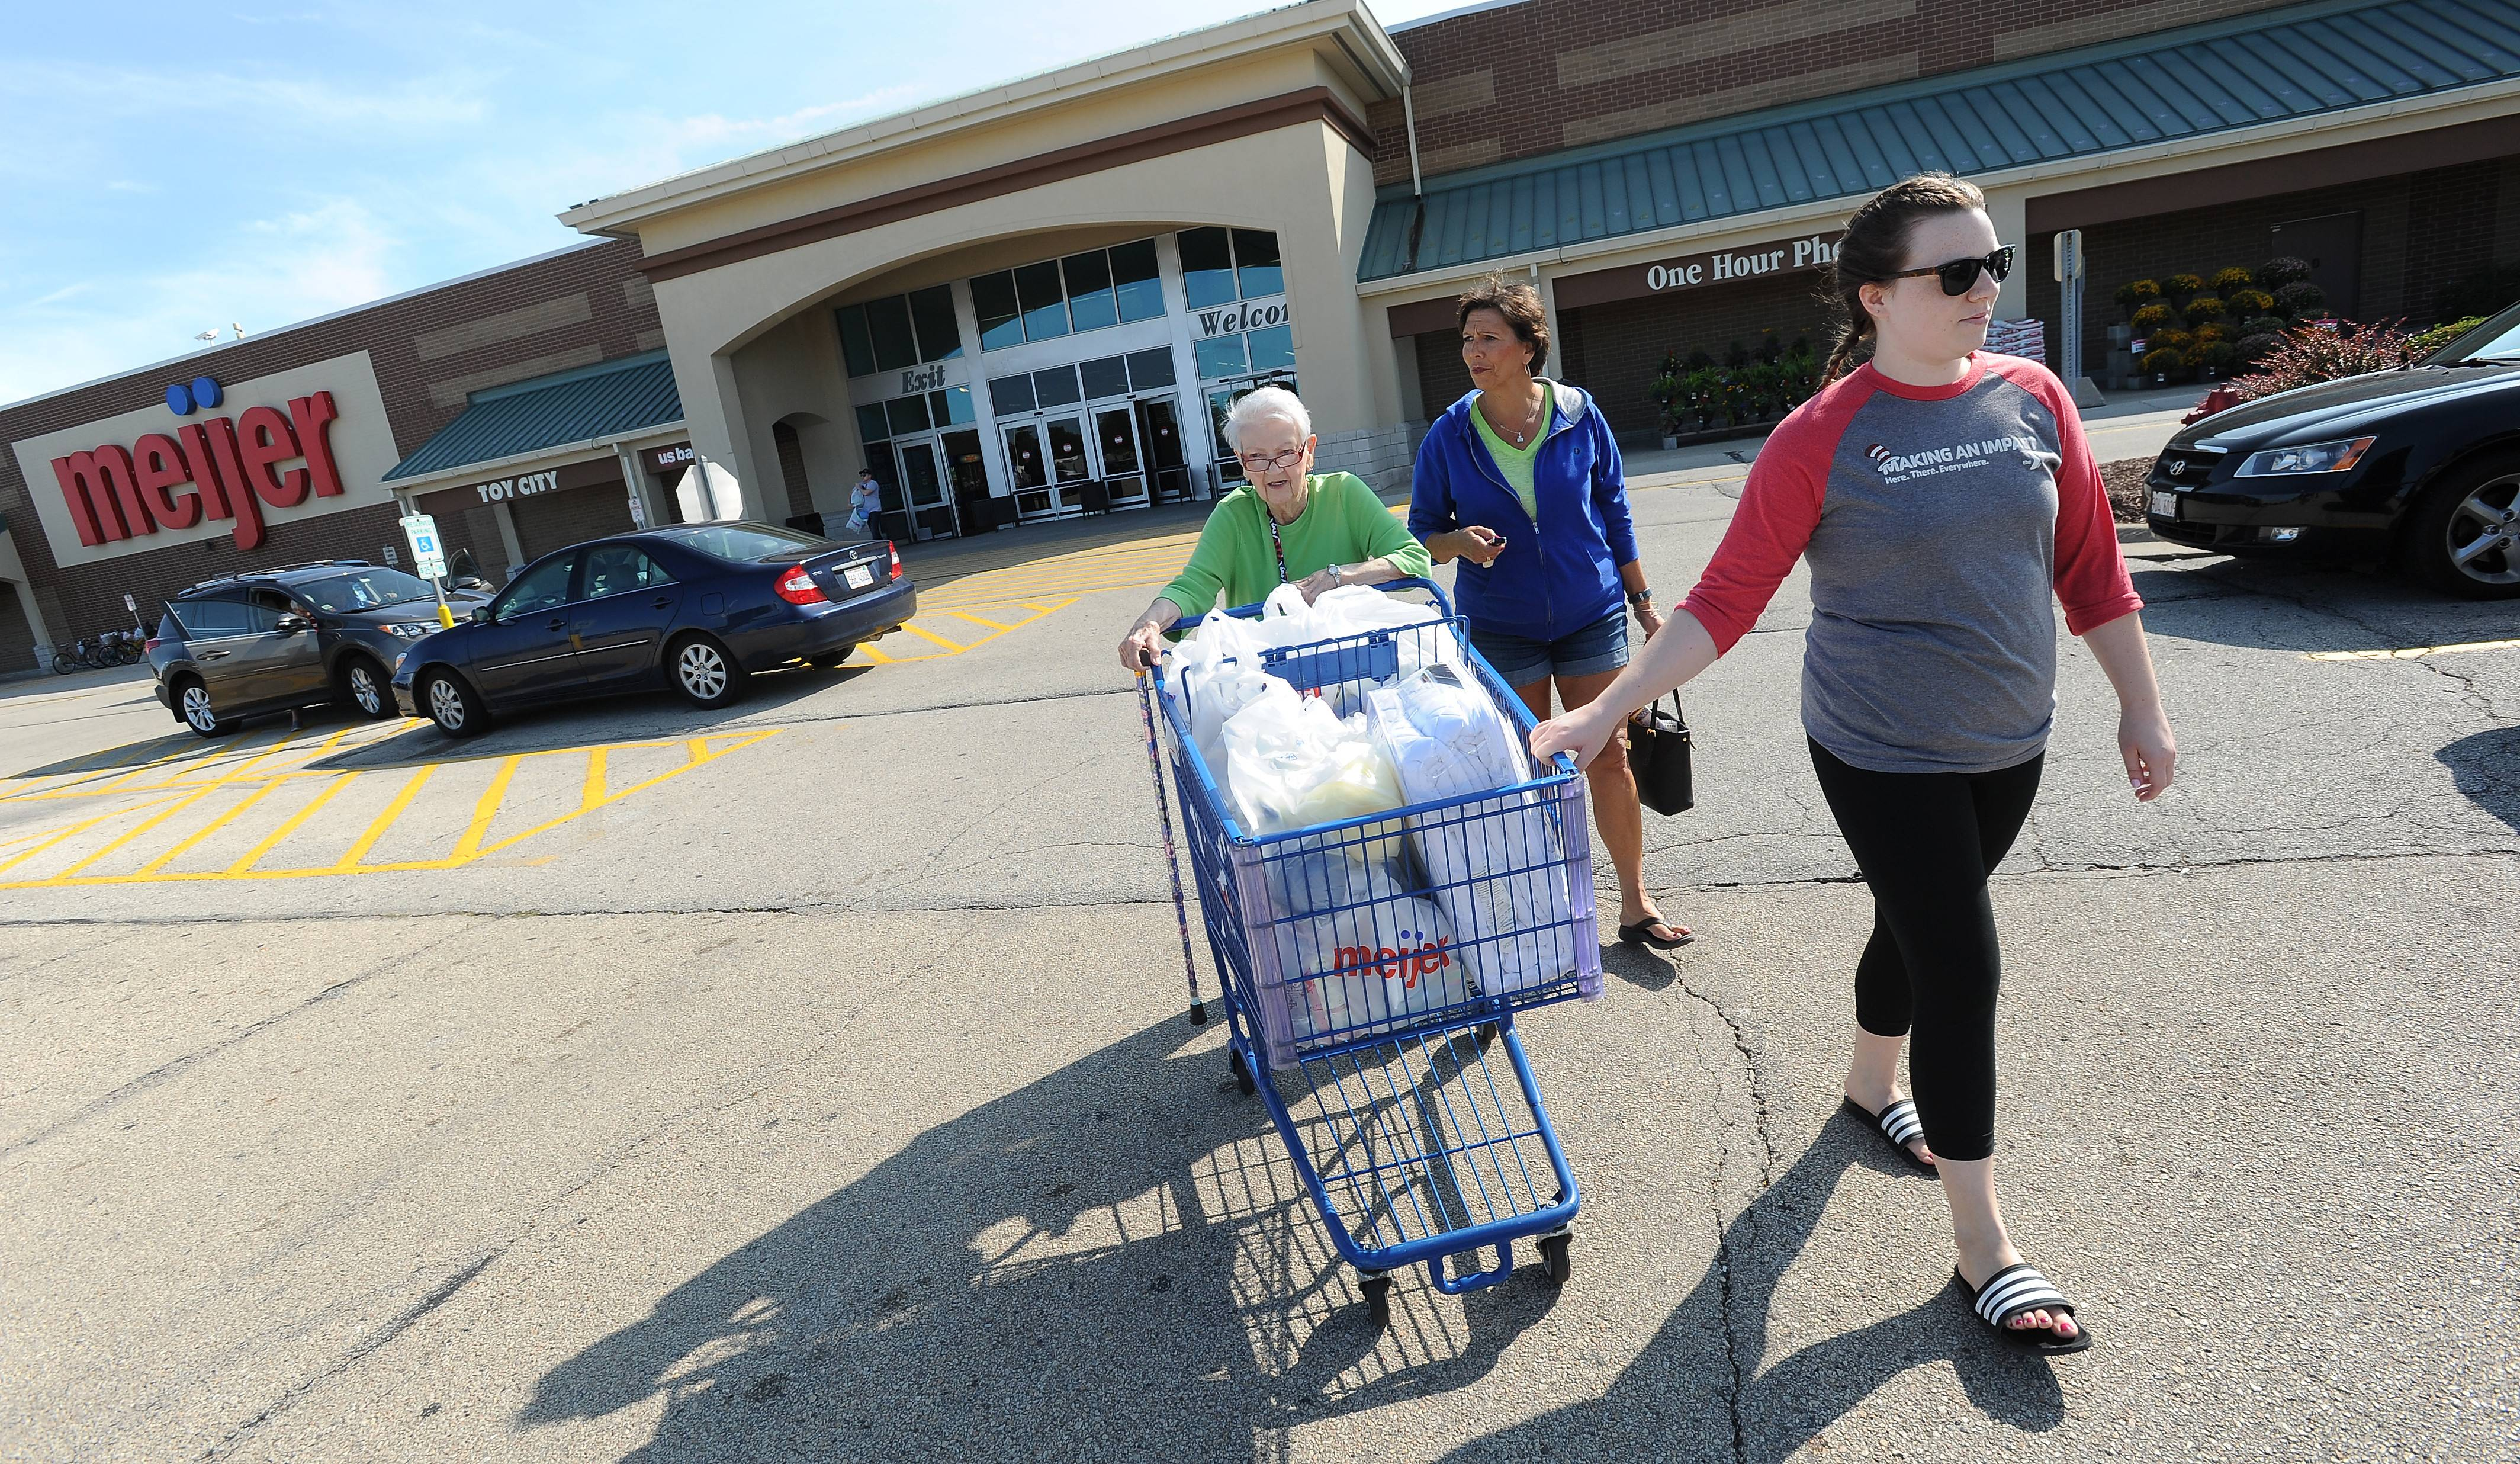 Pam Kaloustian of Arlington Heights, center, and her daughter Stephanie of Chicago help her mother Ellen with shopping at Meijer in Rolling Meadows. The state will begin taking a cut of local sales taxes beginning this week.